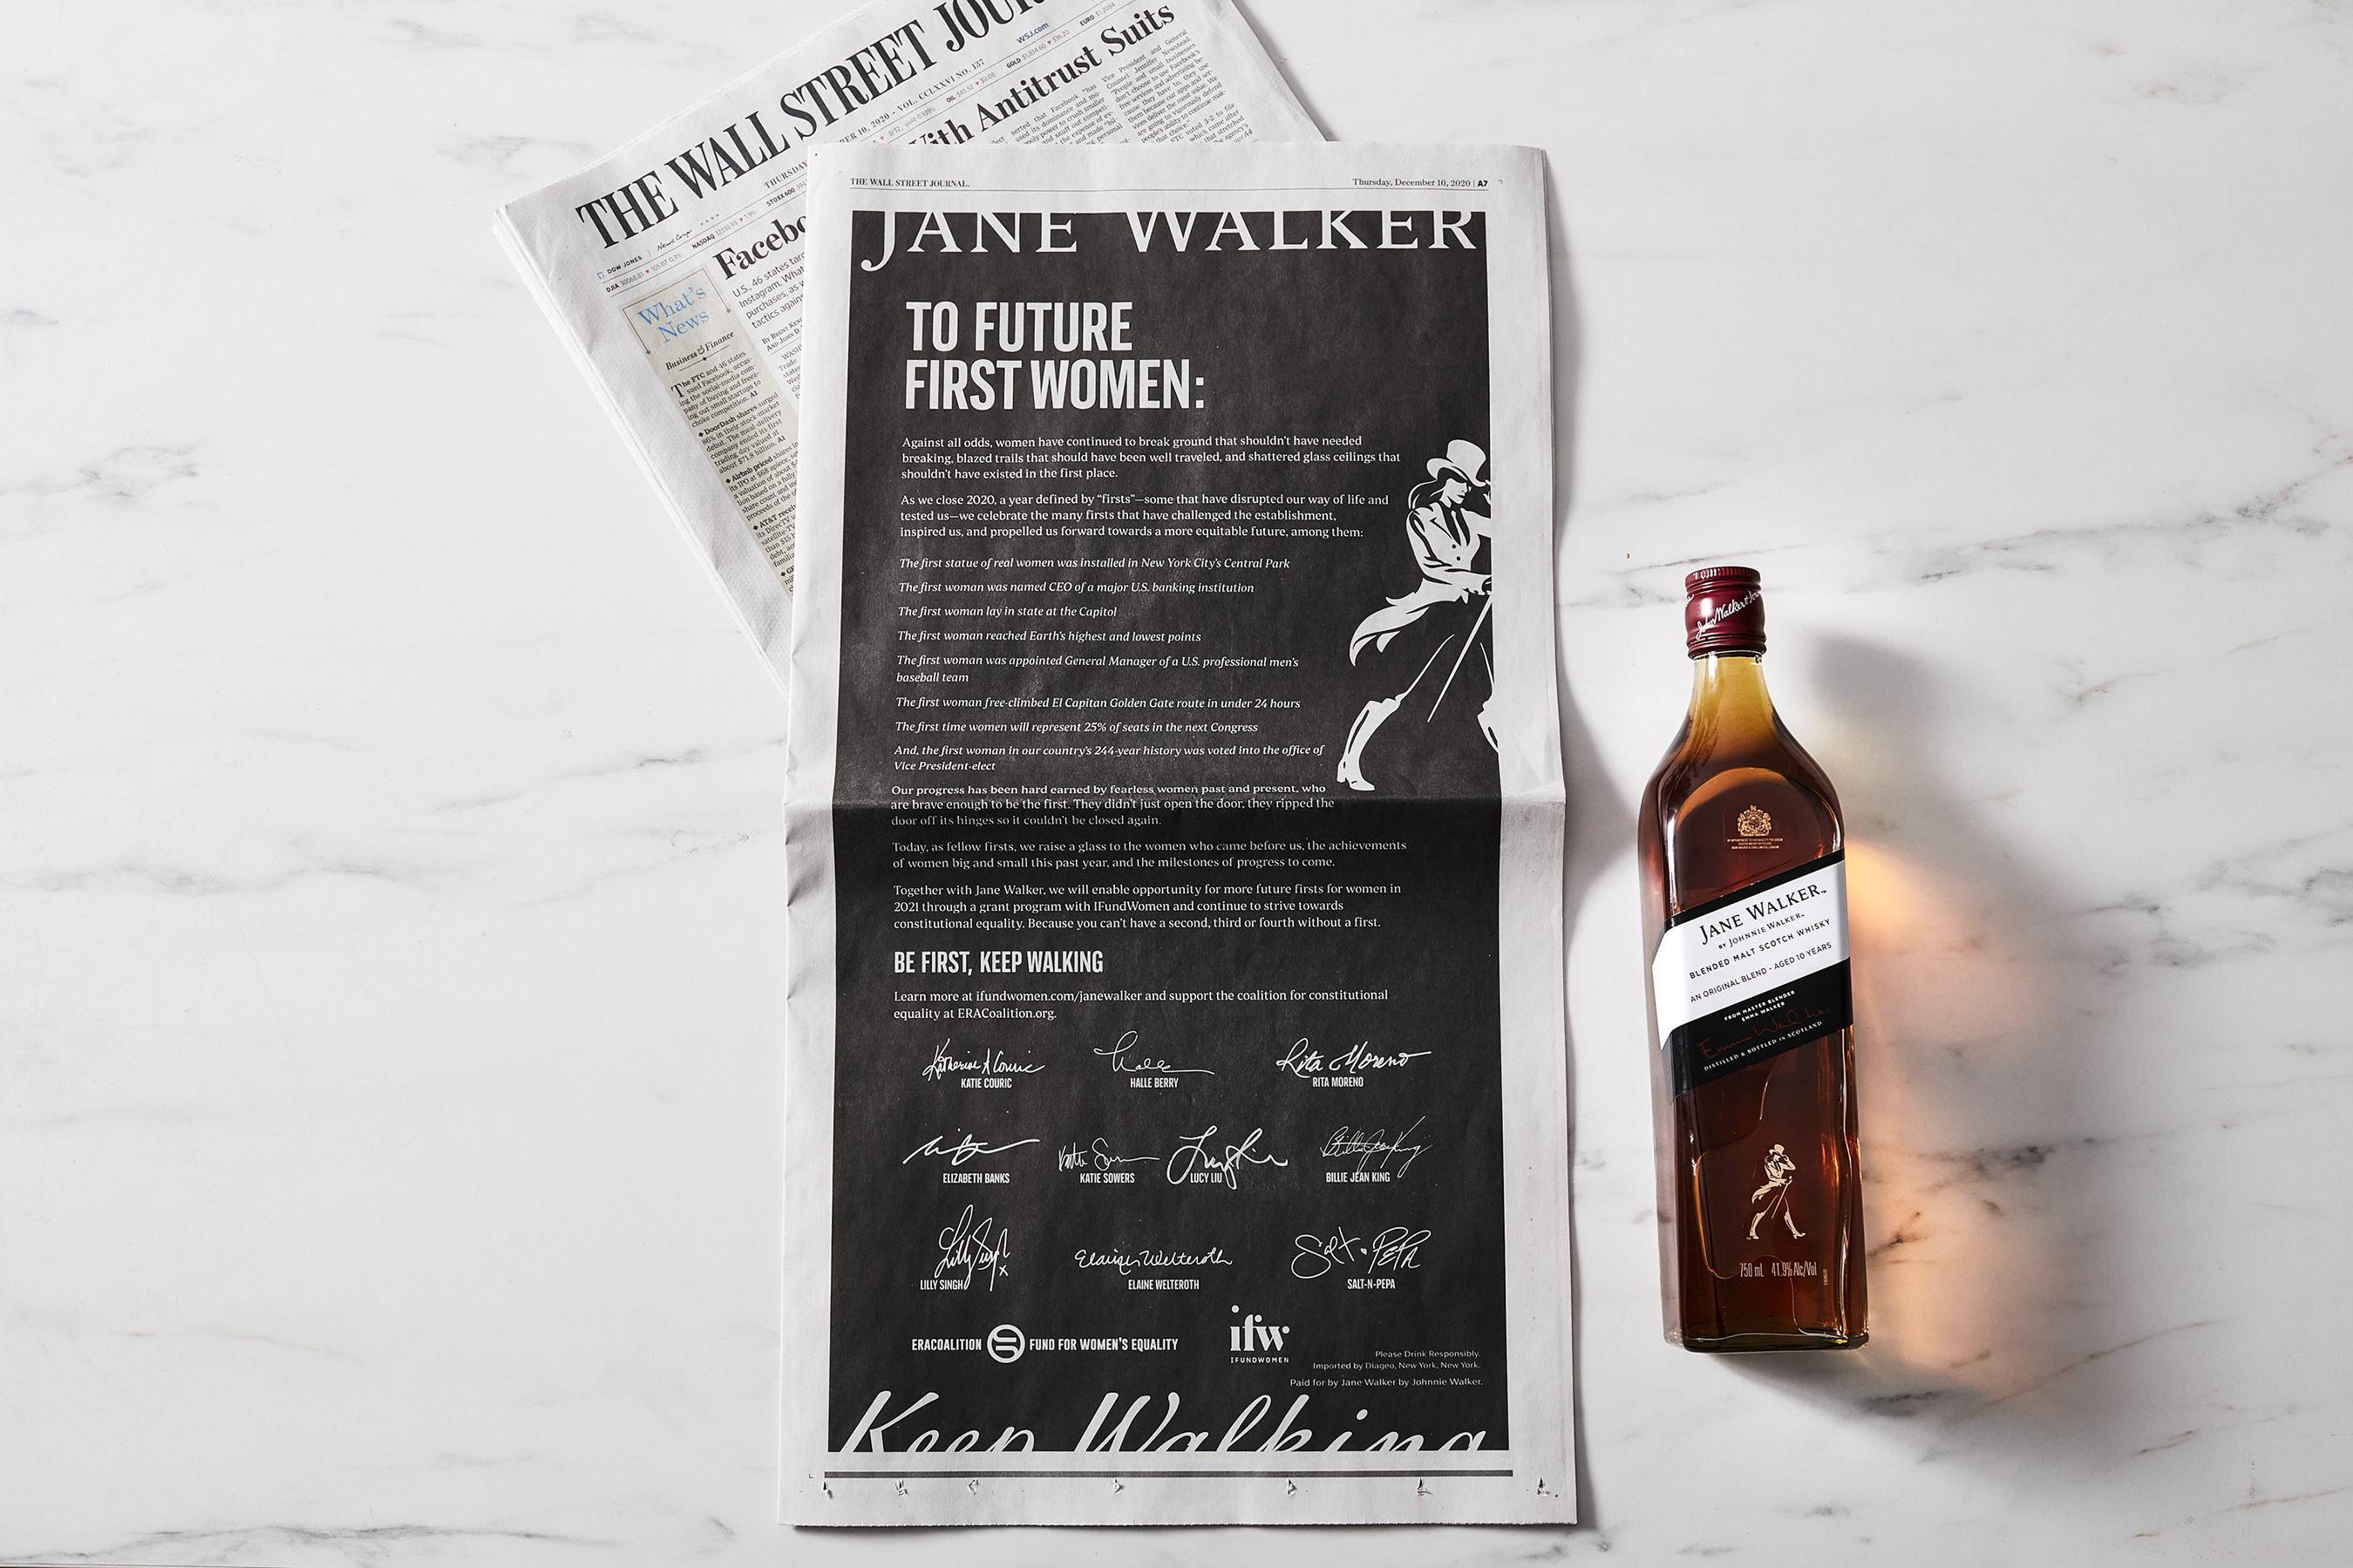 Jane Walker by Johnnie Walker launches its First Women campaign with an Open Letter in The New York Times, The Wall Street Journal and The Washington Post signed by a network of trailblazing 'First Women.'